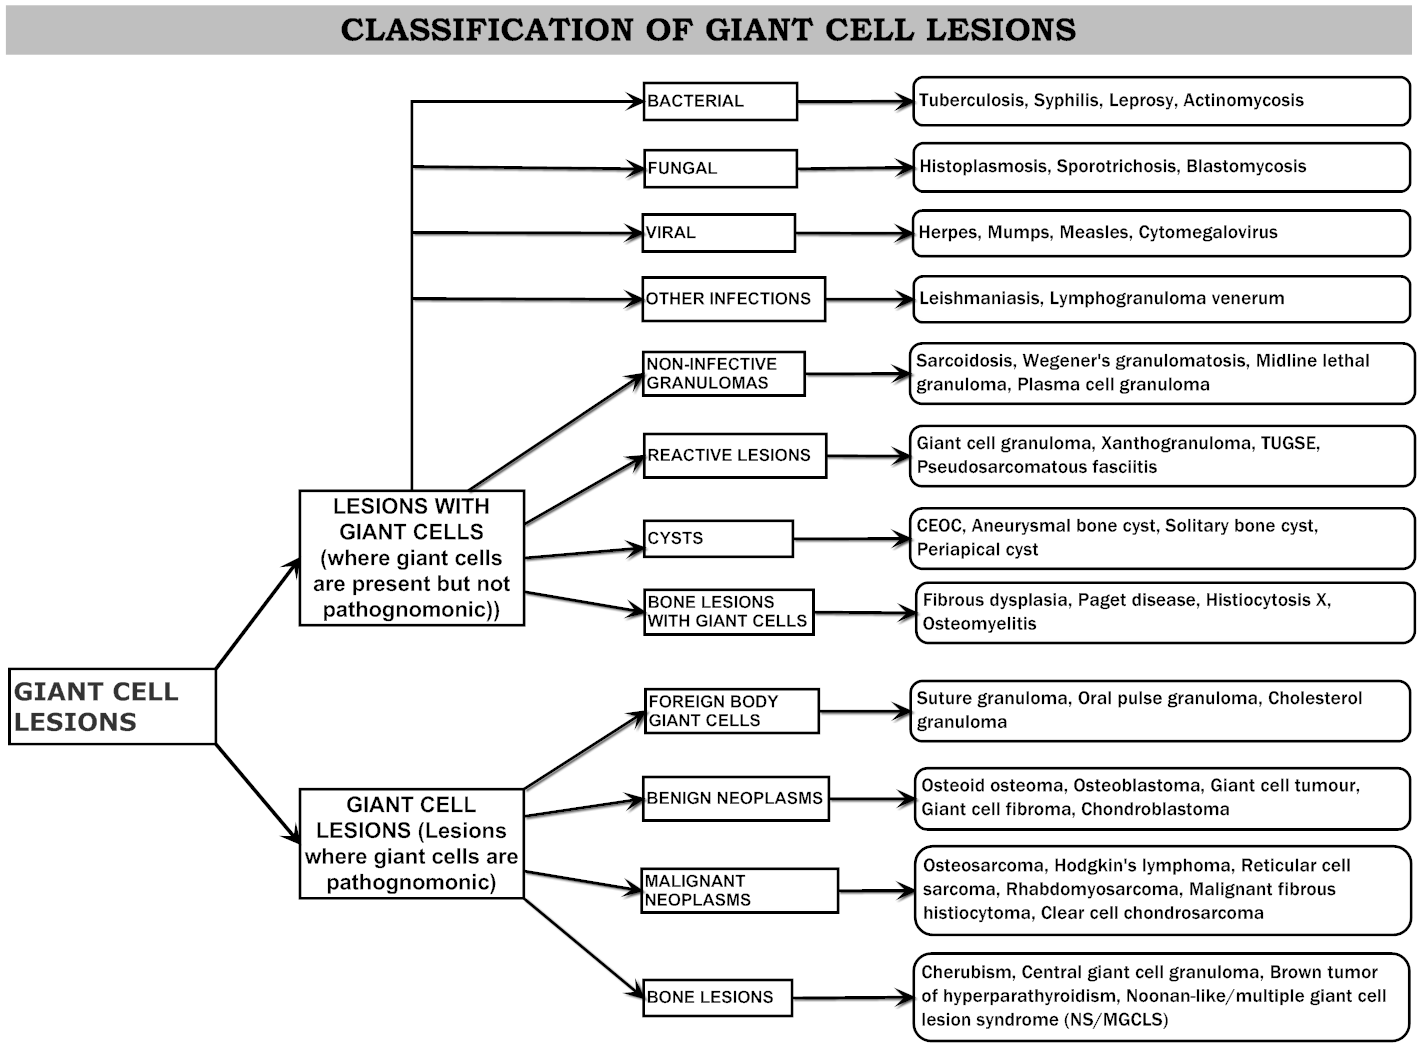 Classification of Giant Cell lesions